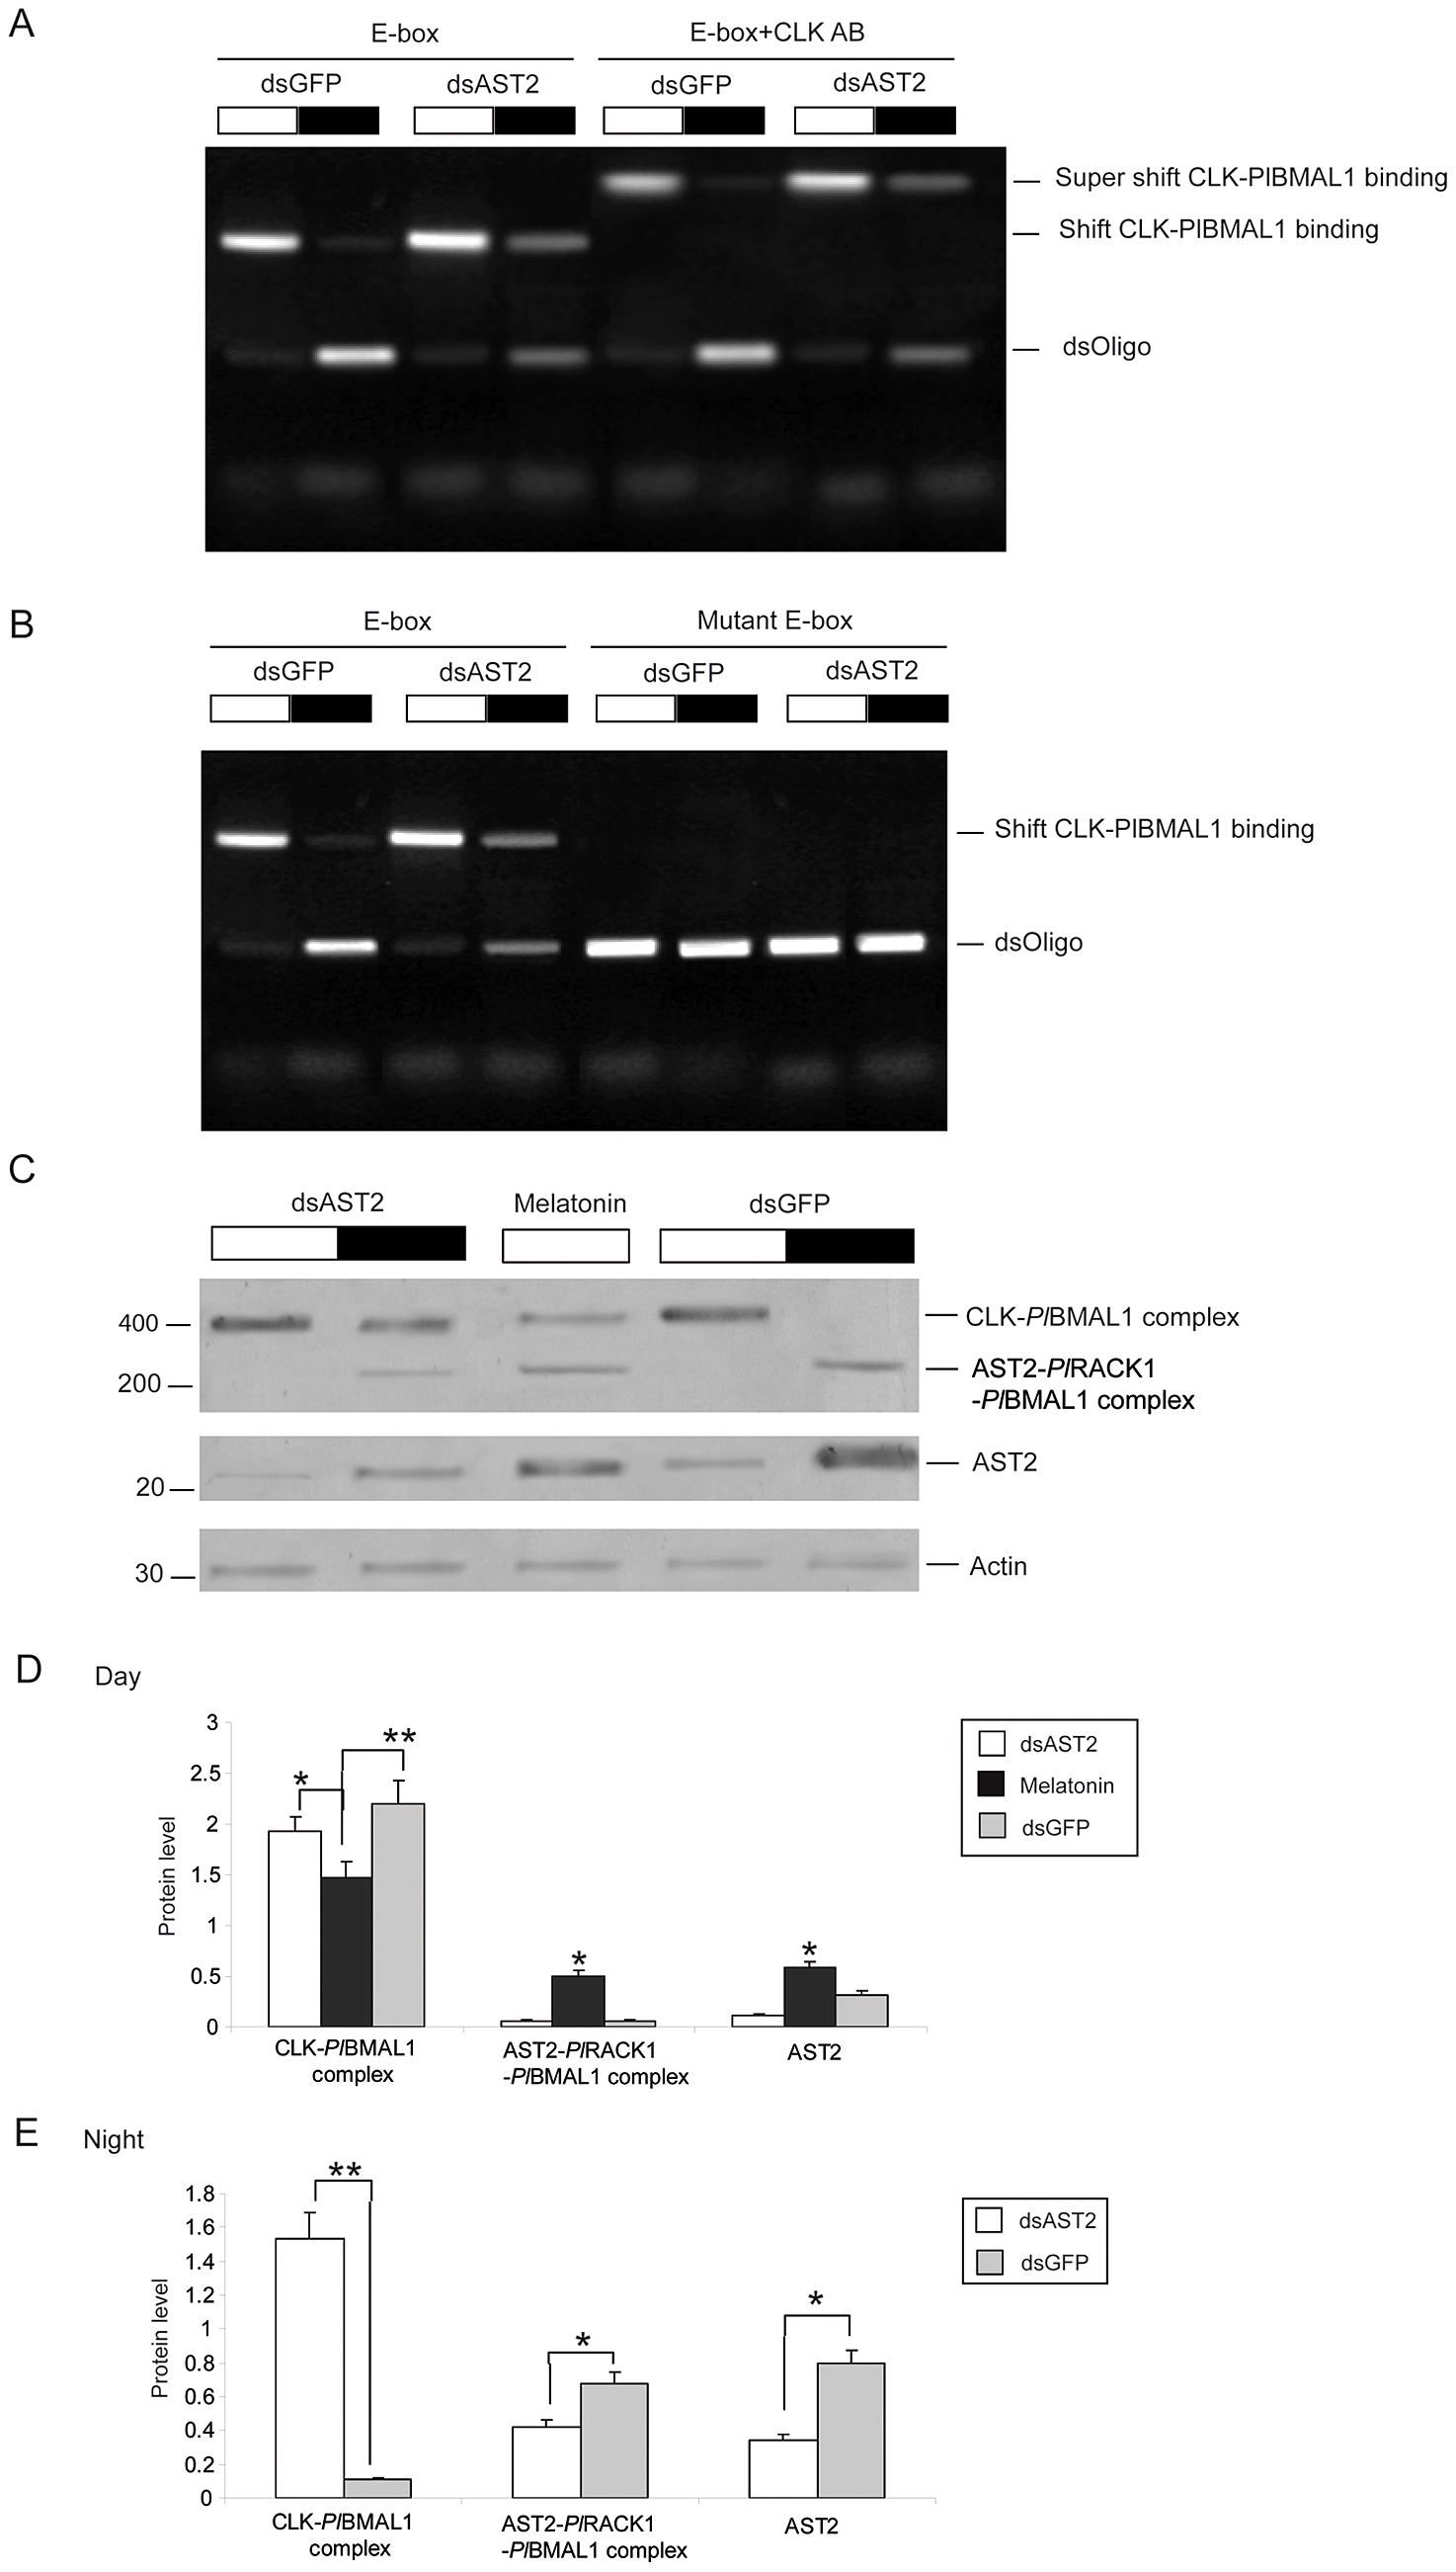 AST2 knockdown enhanced the DNA binding activity of CLK/<i>Pl</i>BMAL1.